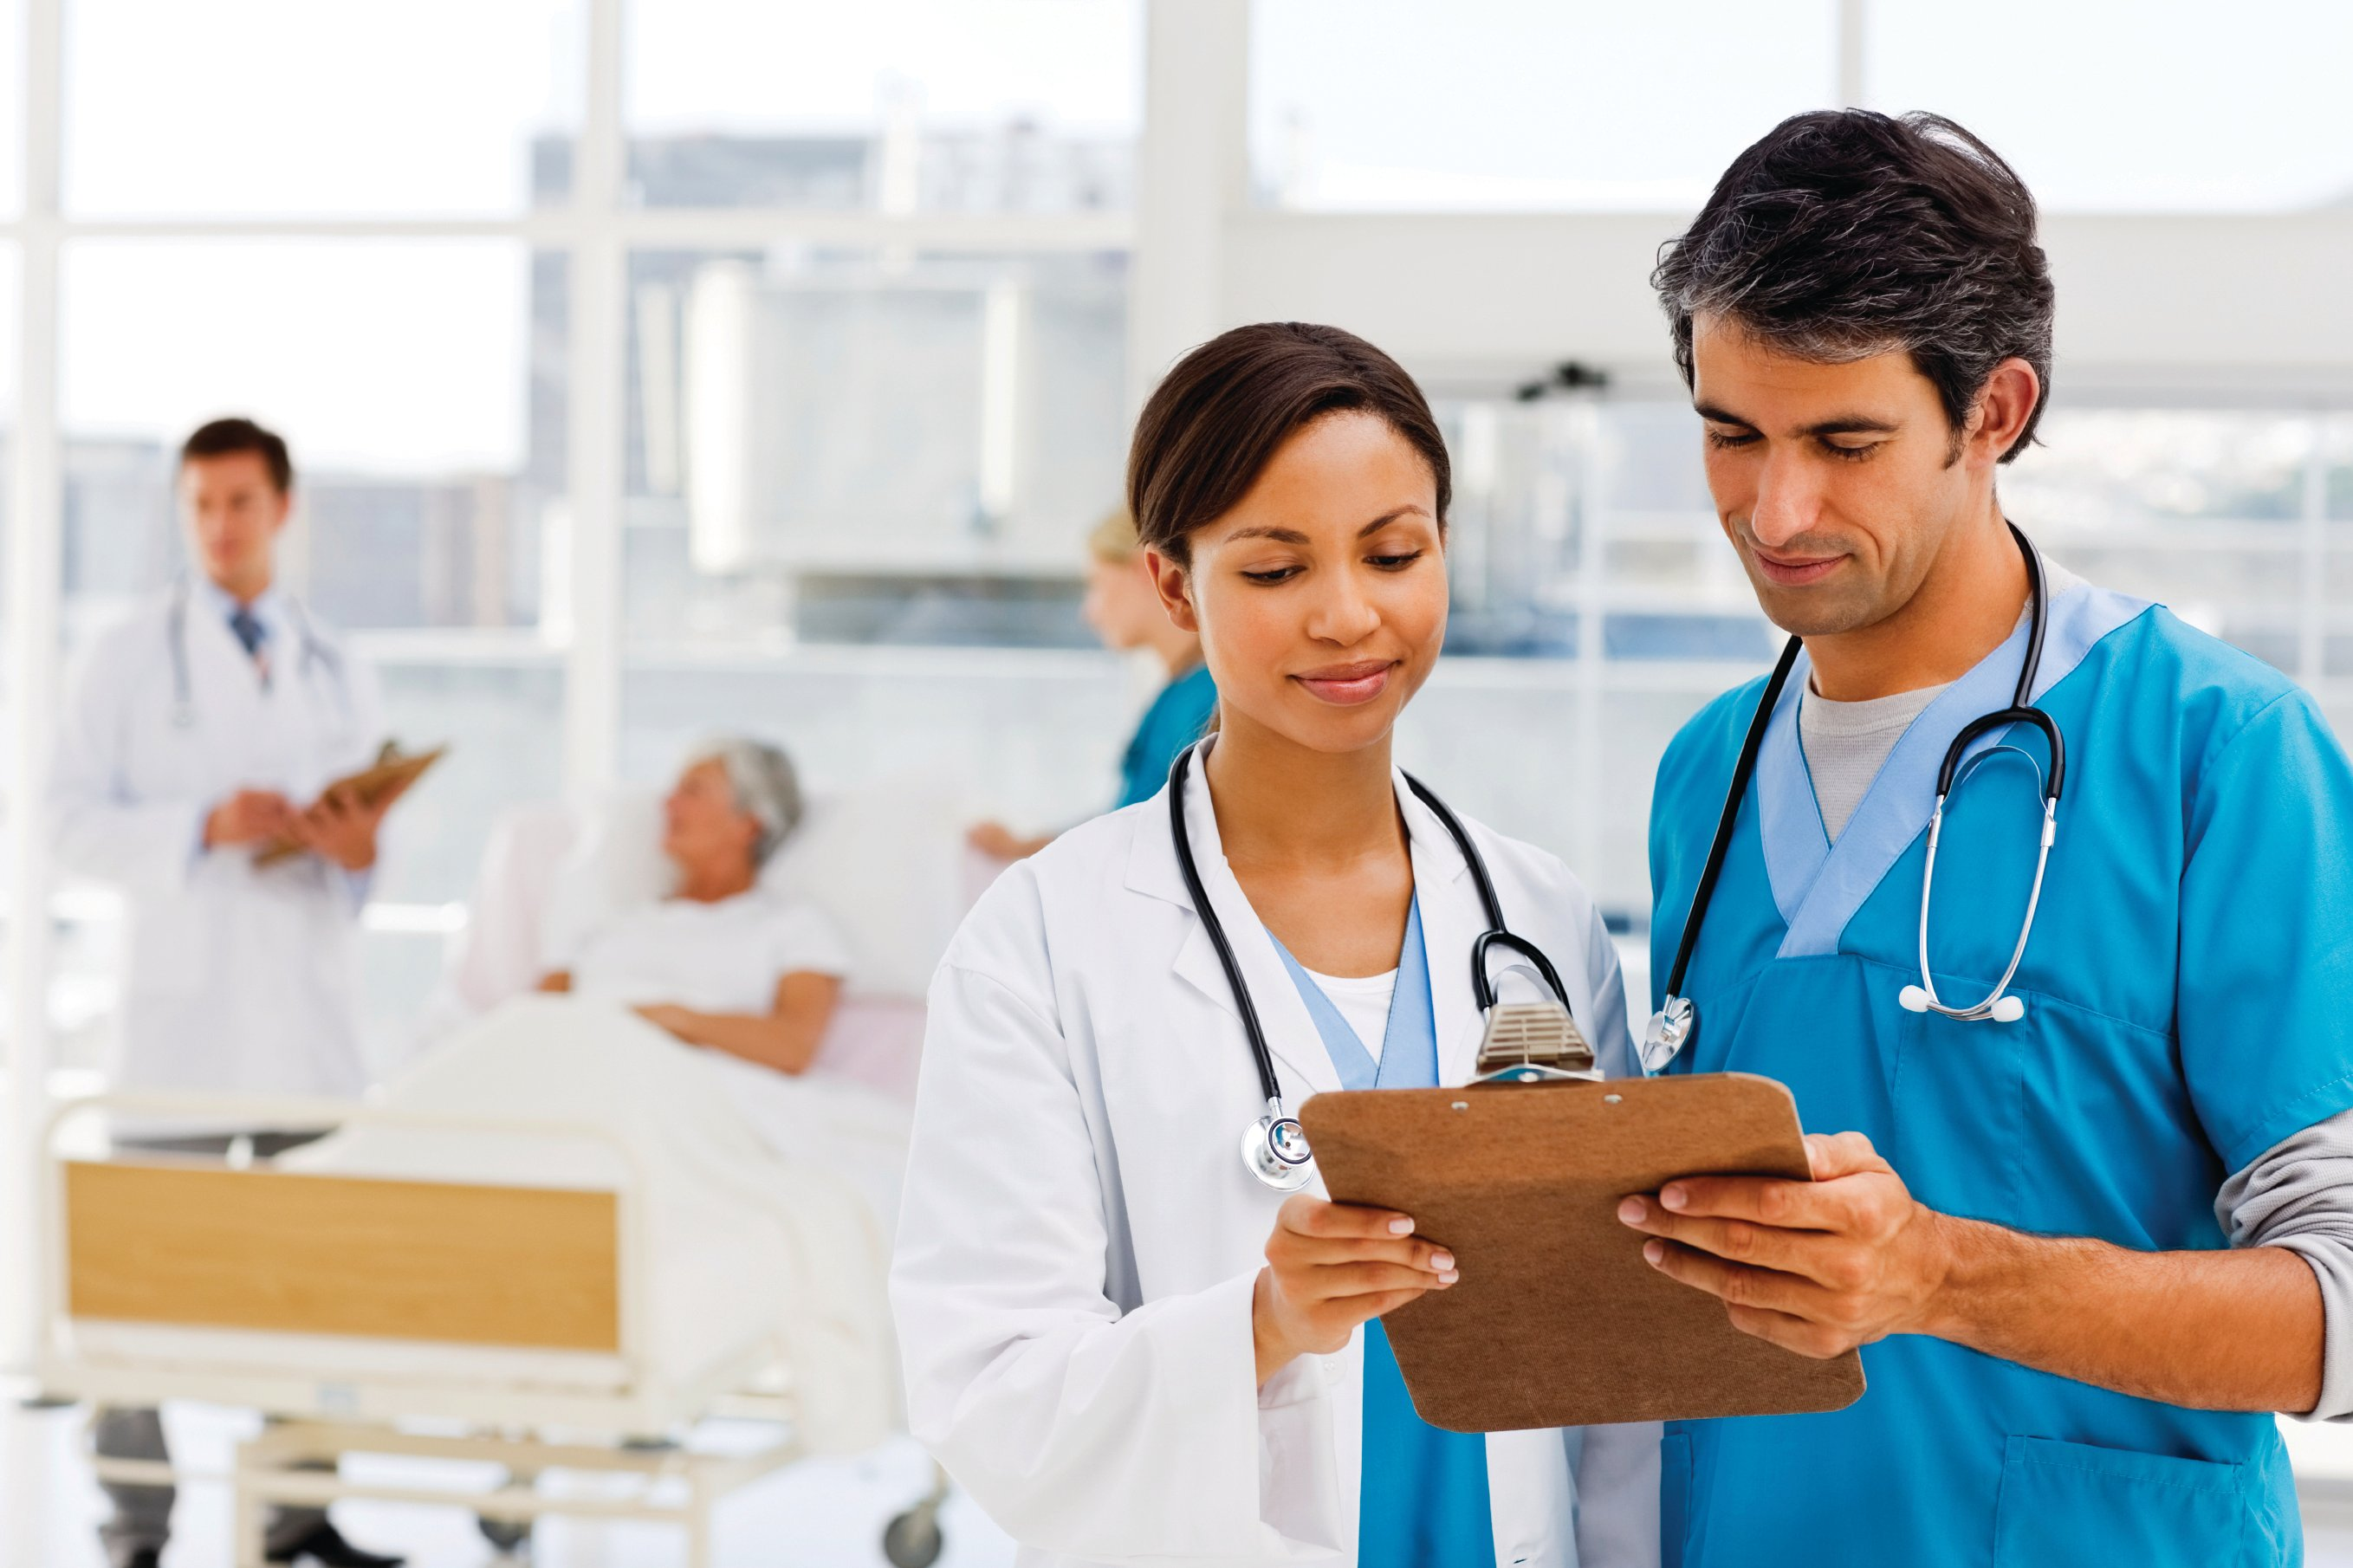 Two hospitalists look over a clipboard